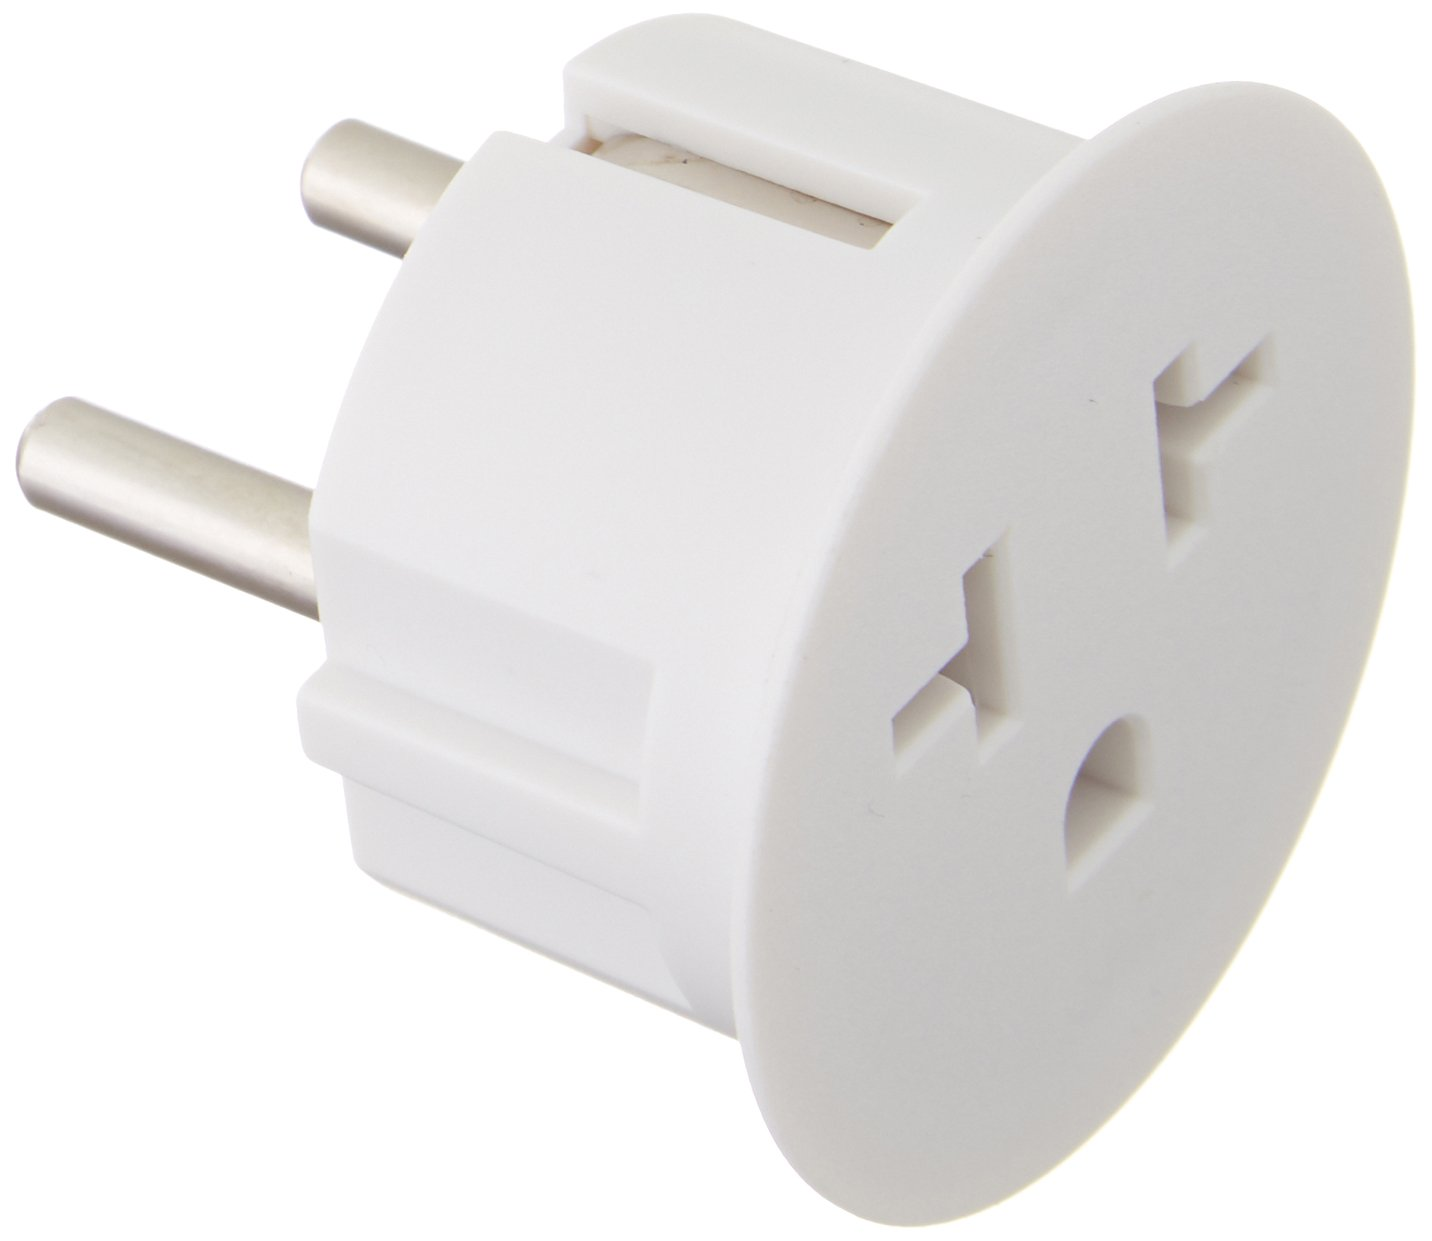 Cheap Grounded Plug Wiring Find Deals On Line Using A Screw Or Against Socket South Africa Get Quotations 6pkschuko Heavy Duty Usa American To European German Schuko Outlet Adapter 6 Pack